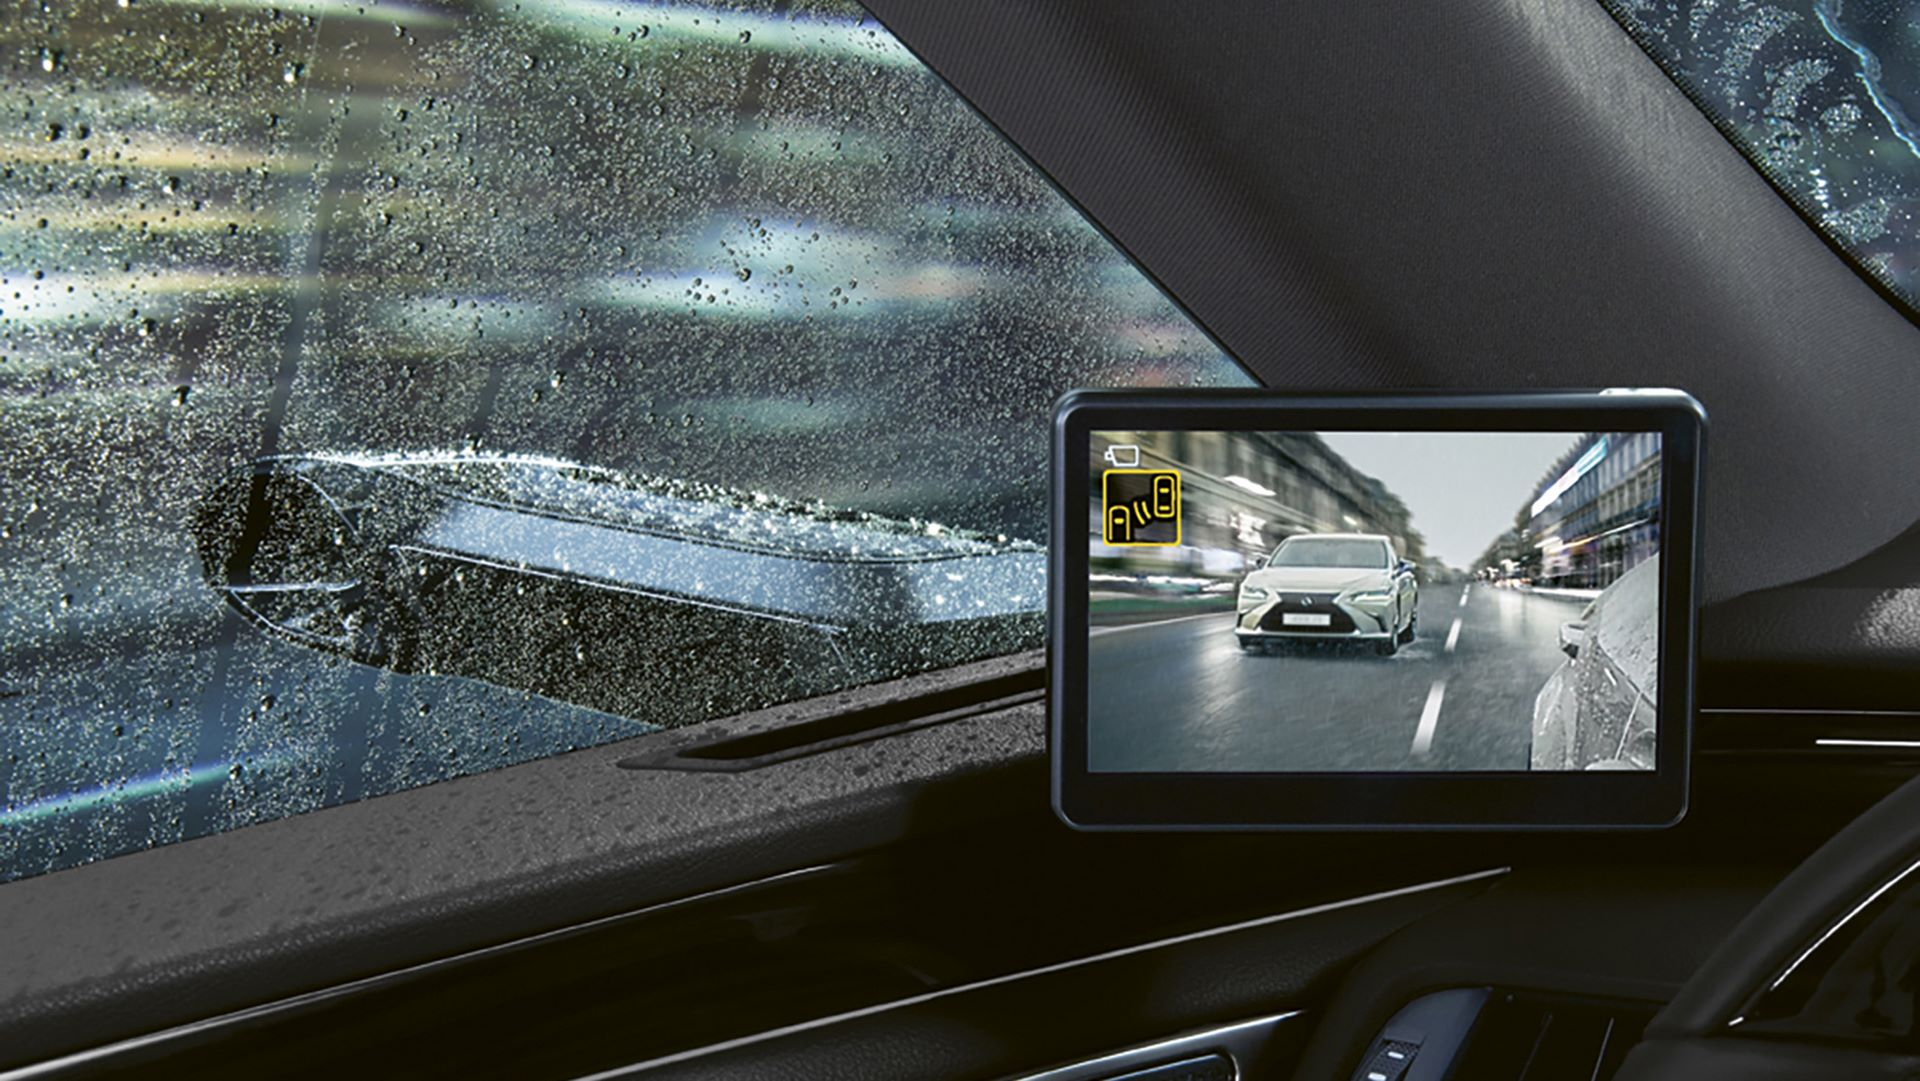 Lexus-ES-300h-camera-digital-mirror-4